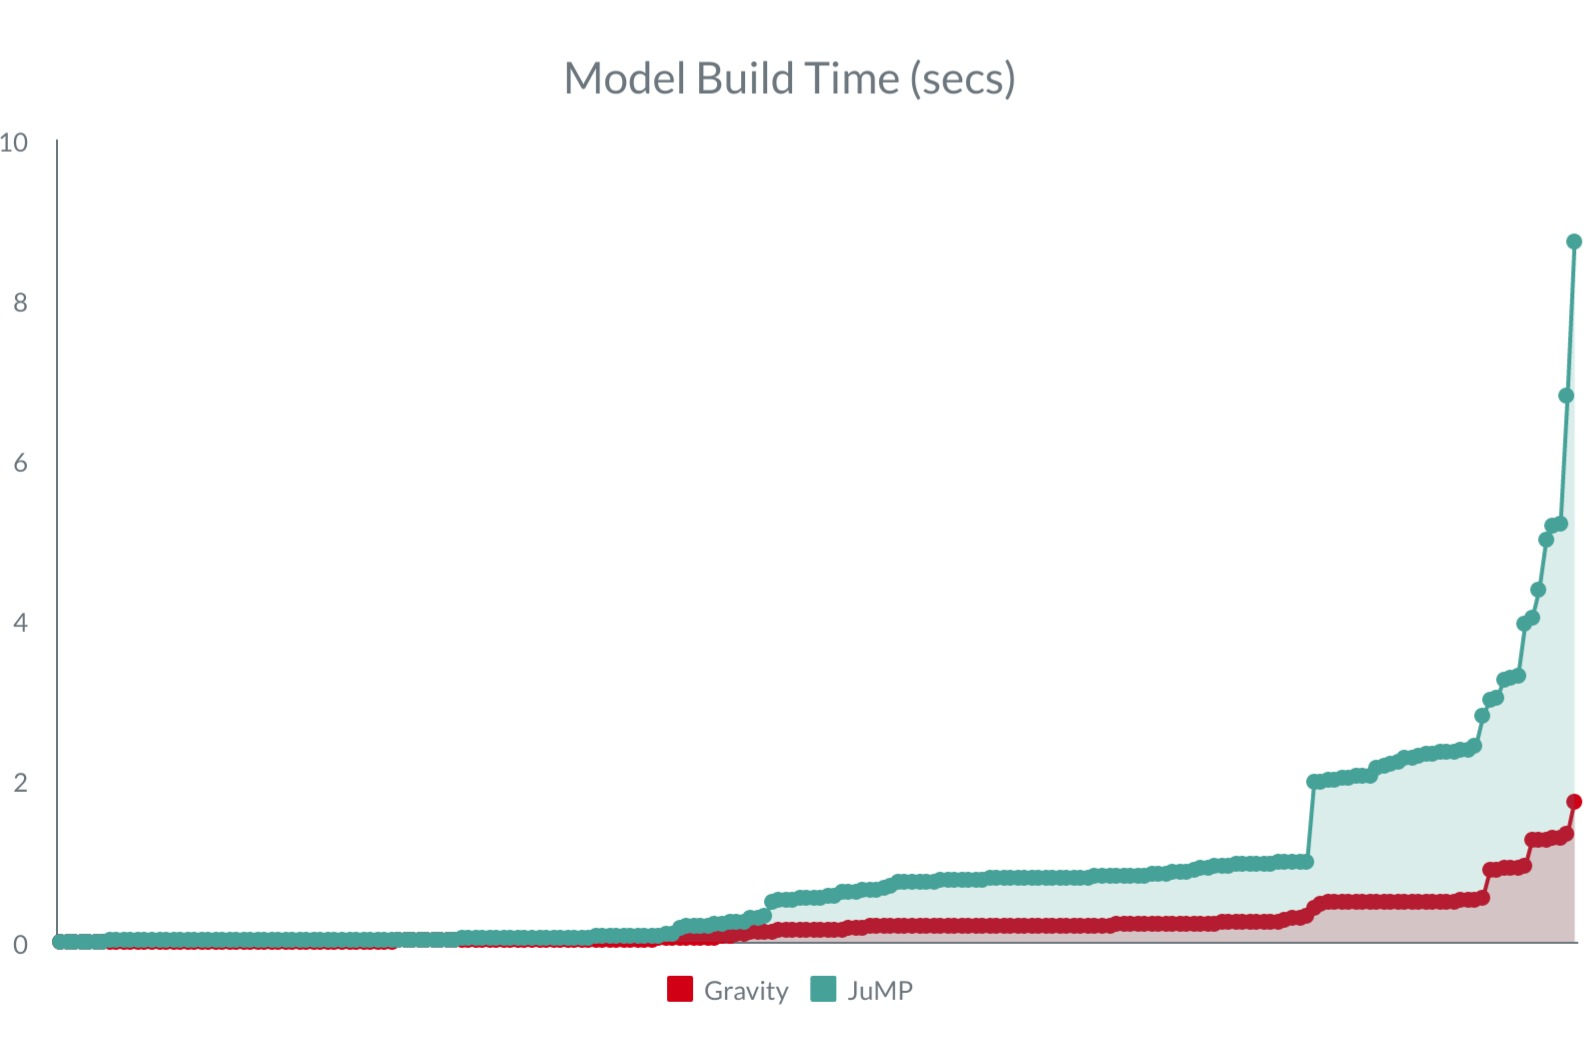 Model Build Time on ACOPF